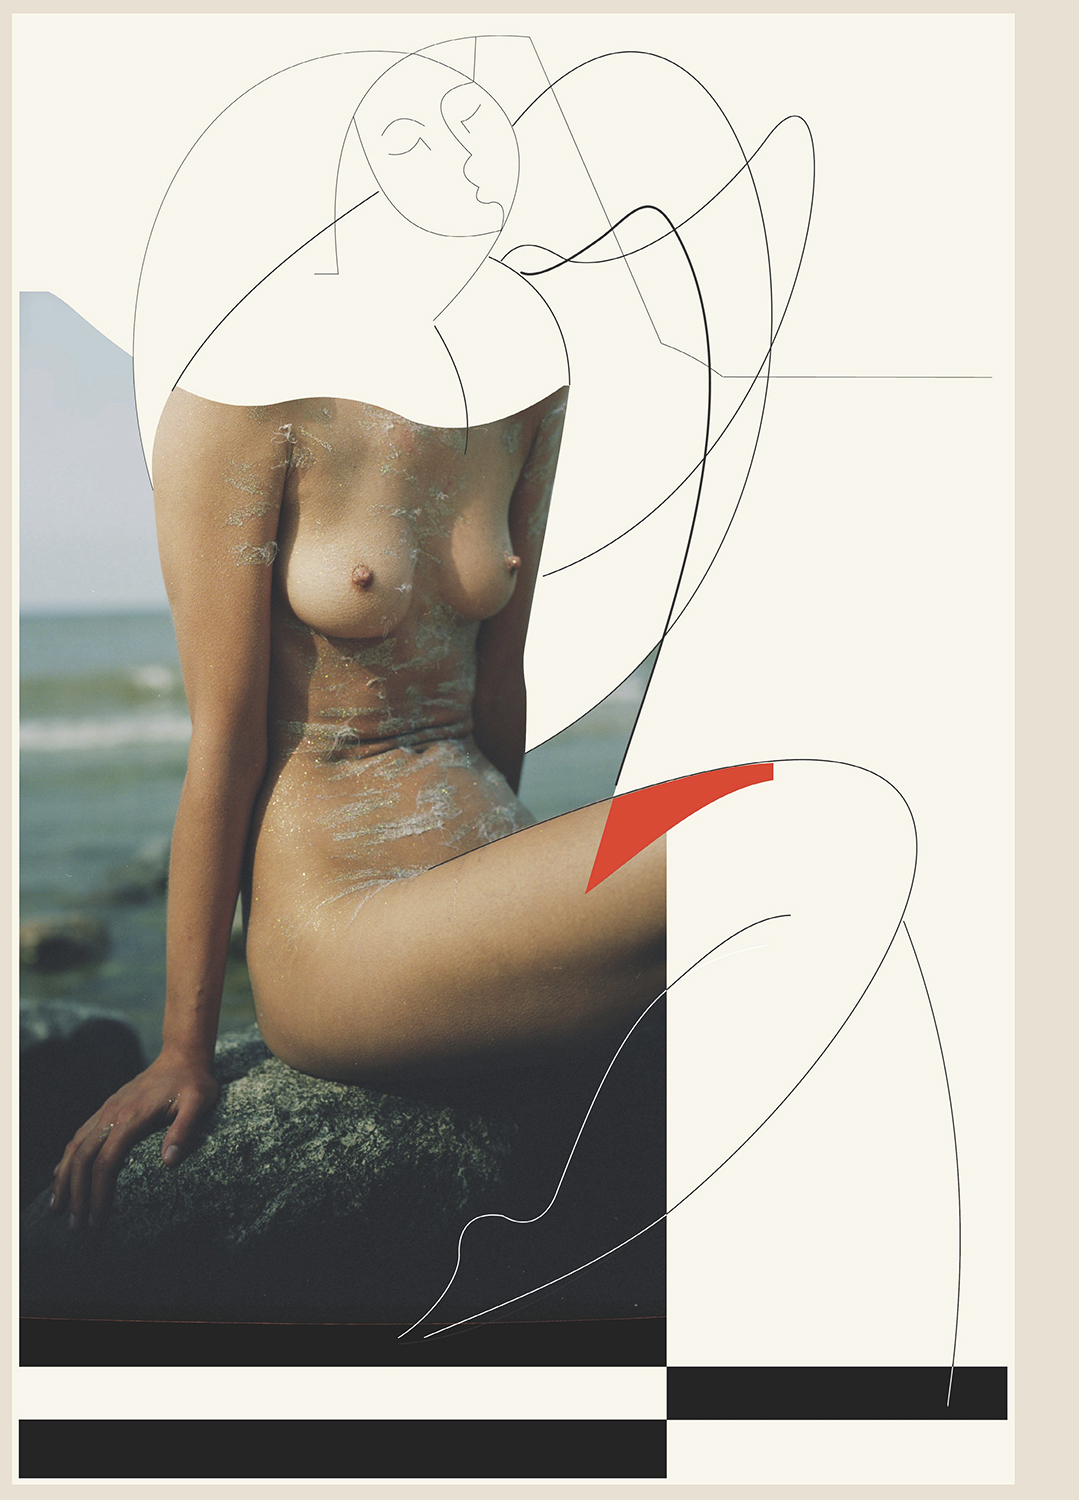 Open Call - Conceptual photograph and graphic drawing of a woman by artist Stefan Milev